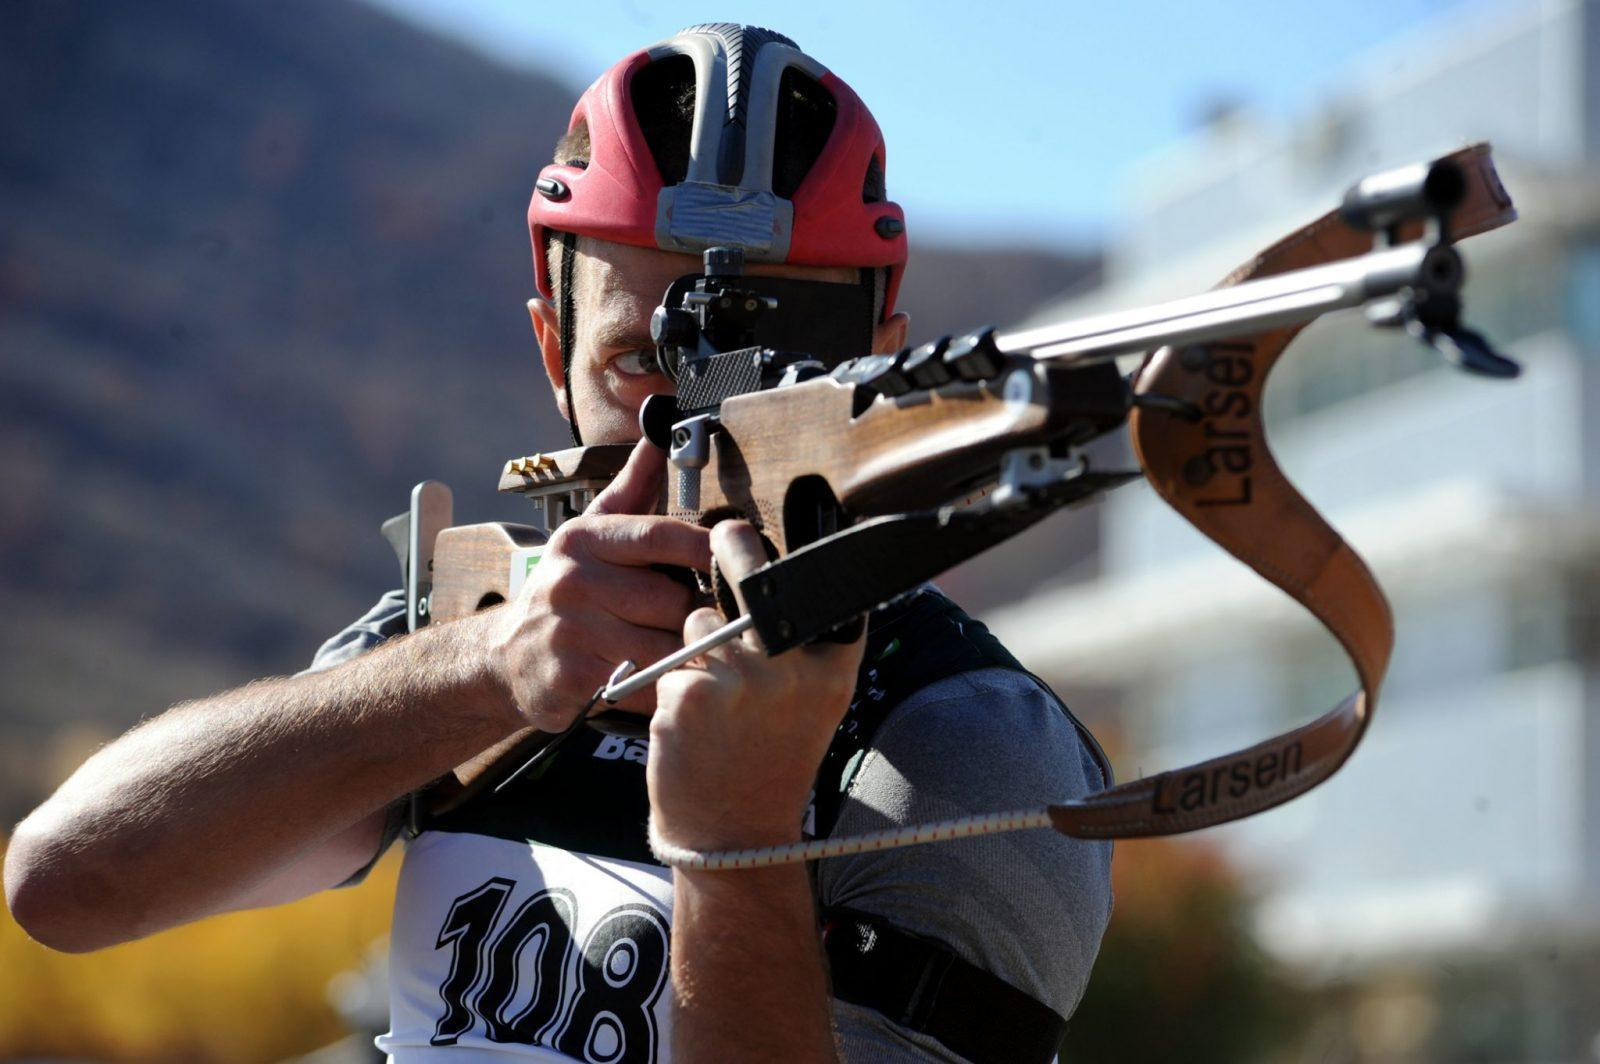 U.S. Army World Class Athlete Program biathlete Sgt. Jeremy Teela, a three-time Olympian, practices shooting from the standing position